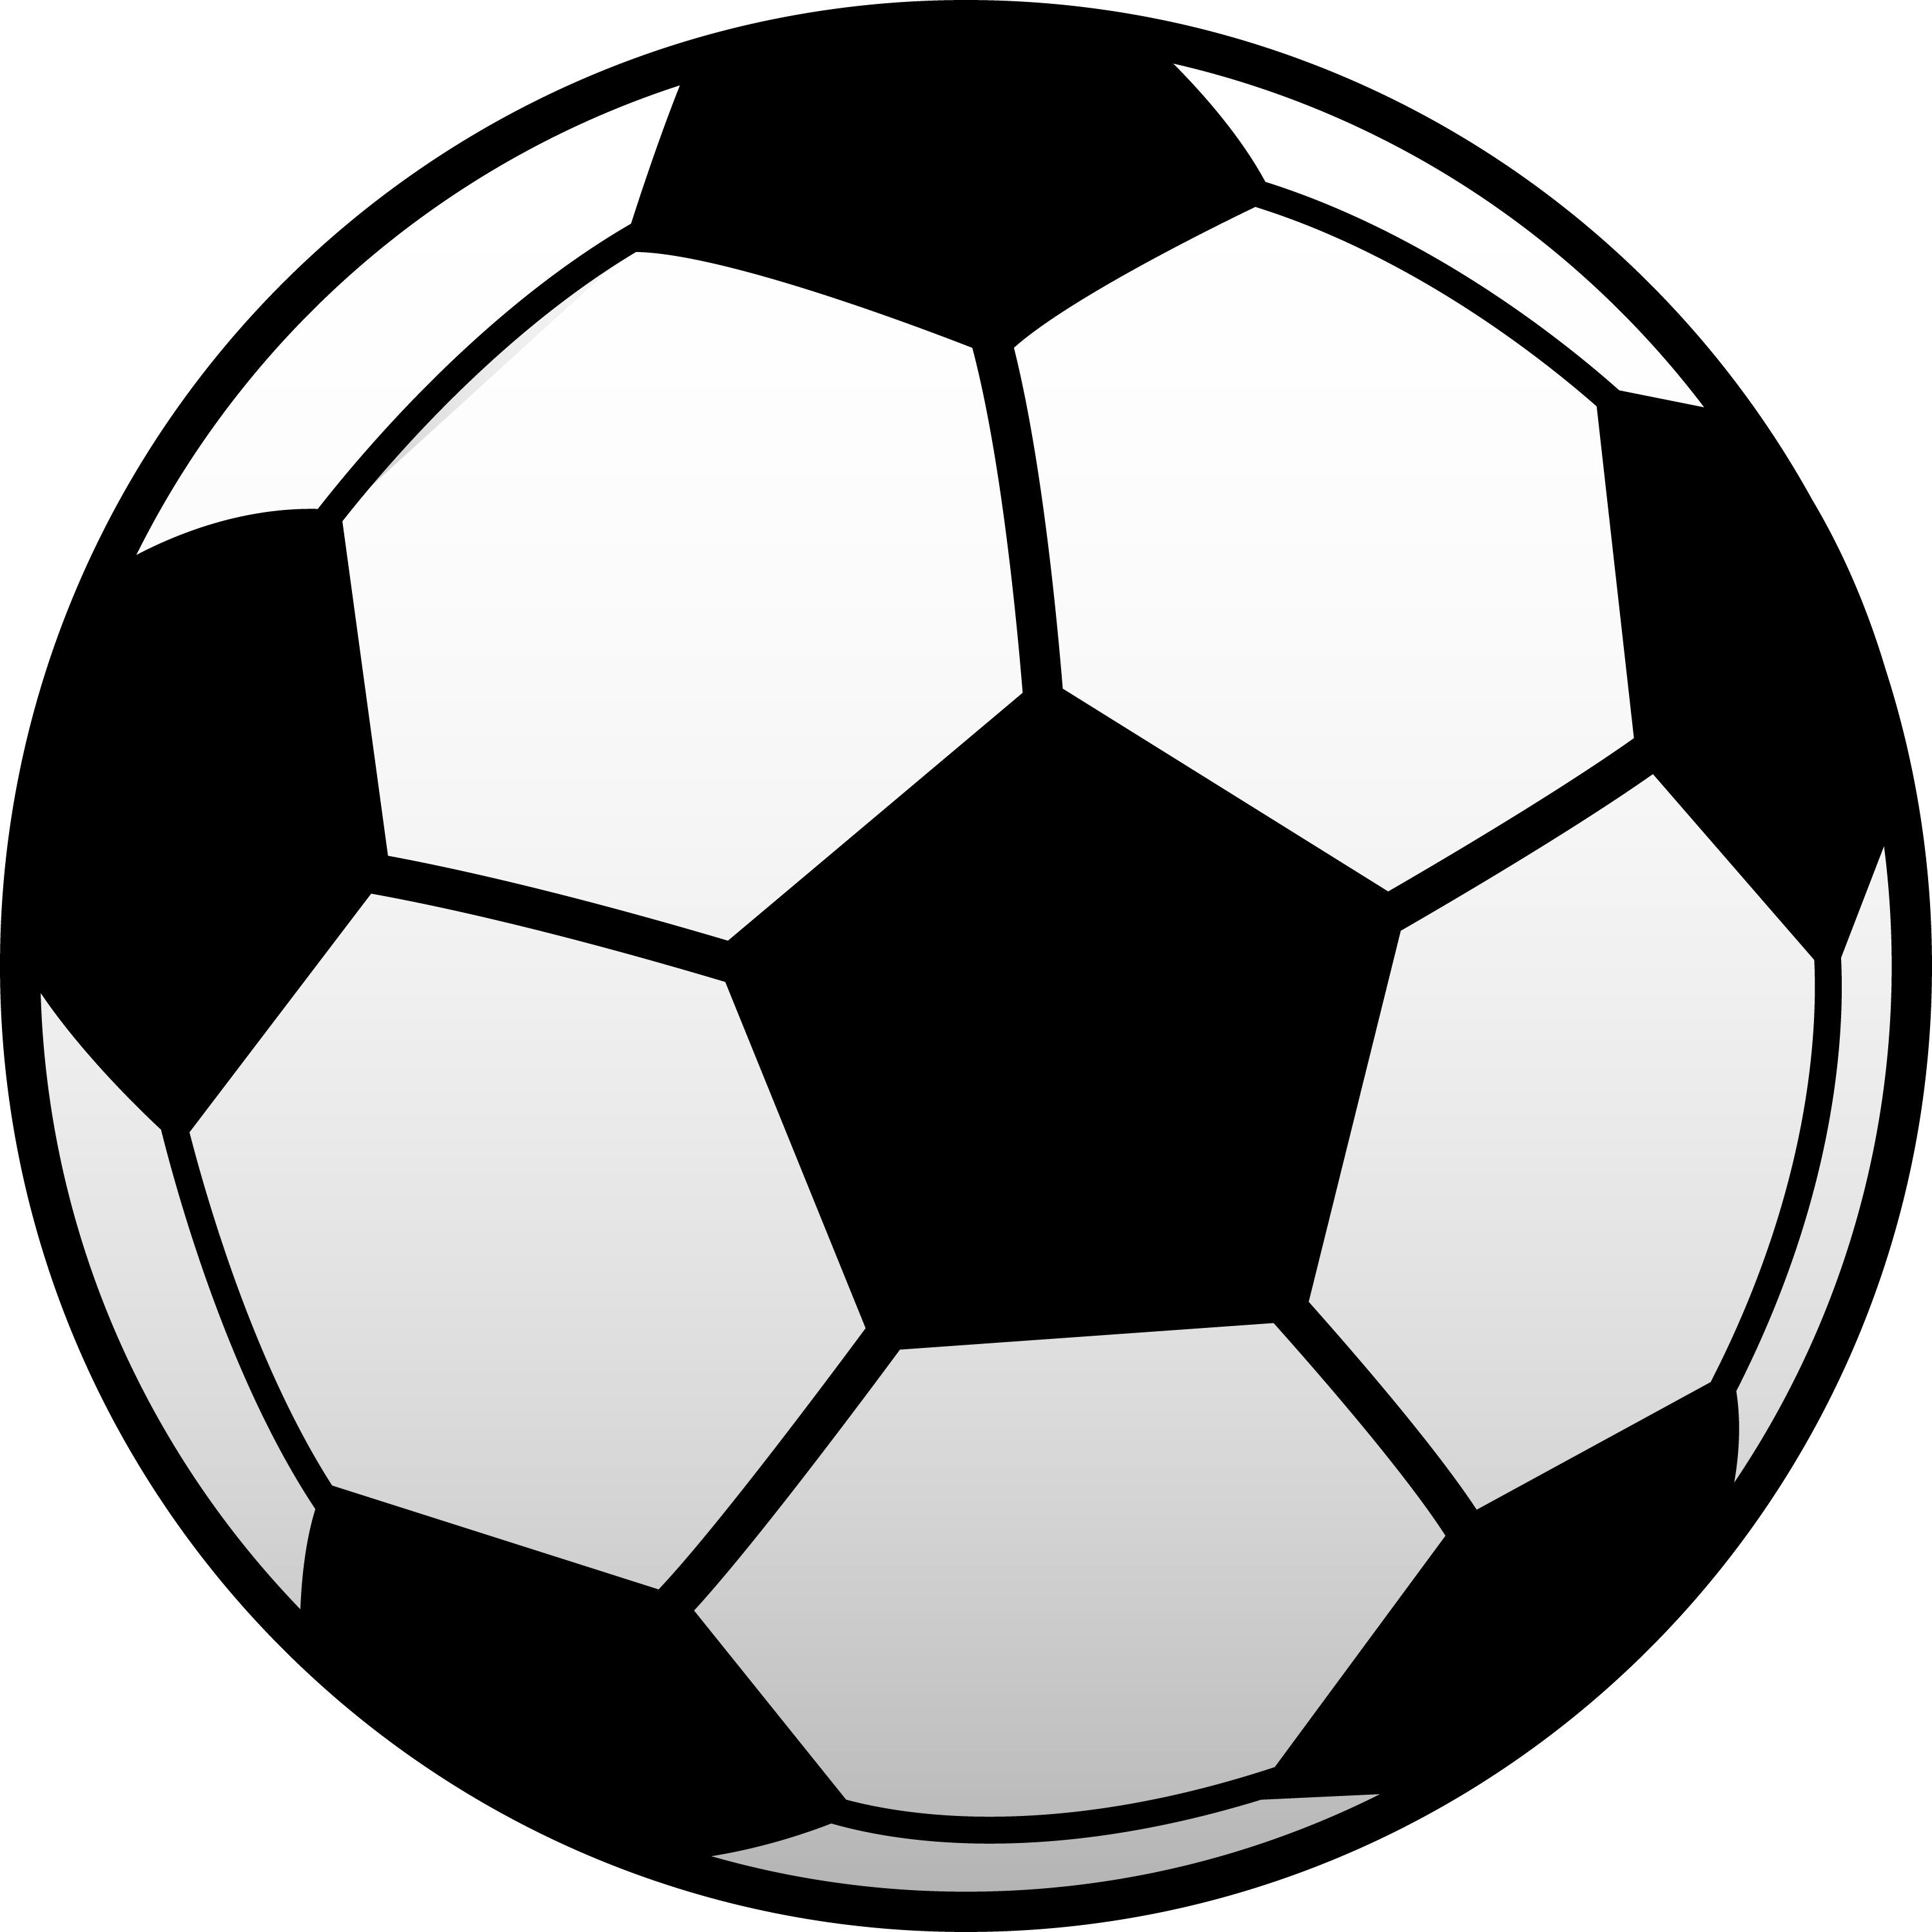 Soccer ball clipart free images 2.